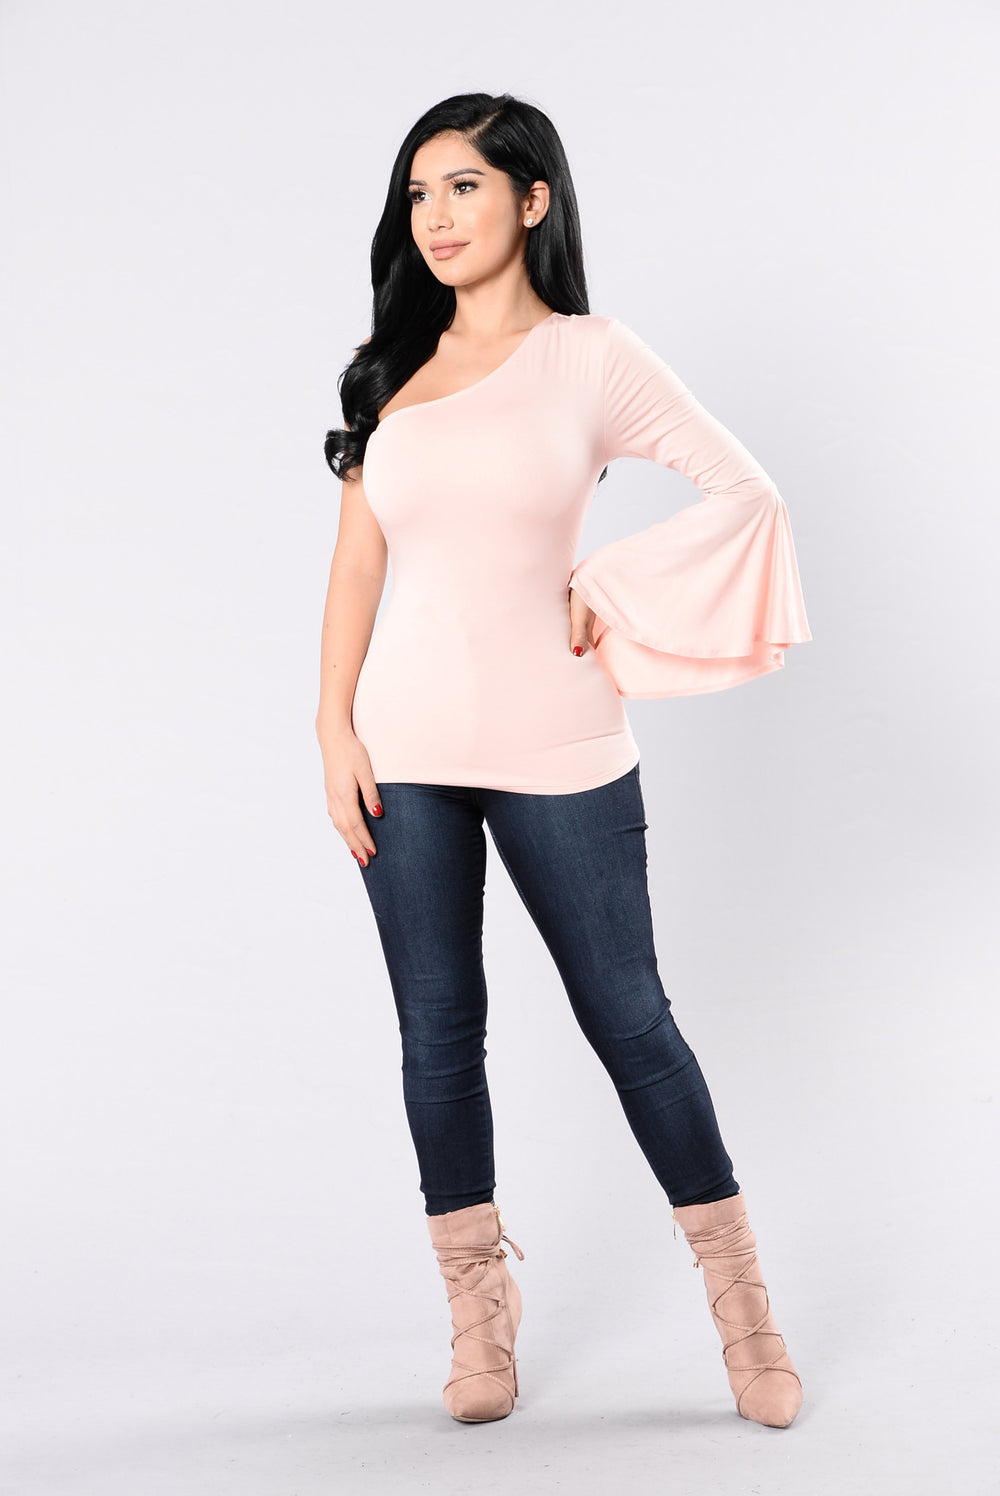 Big Spender Top - Baby Pink